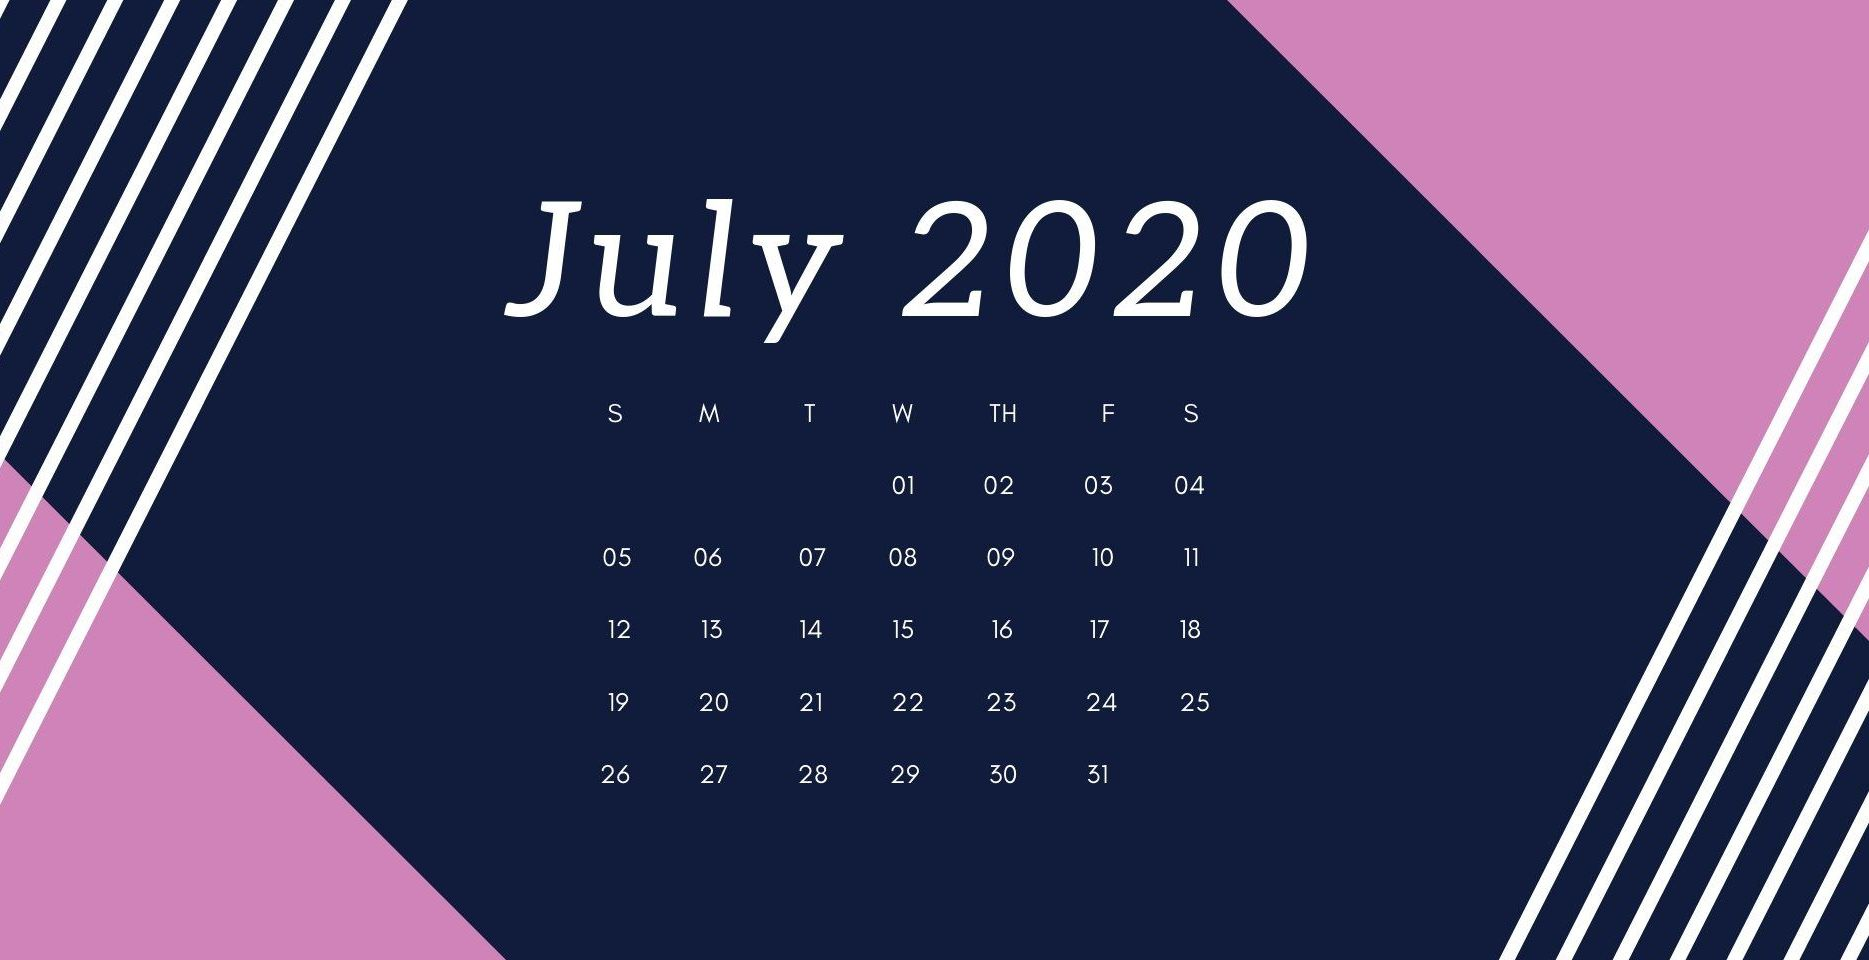 July 2020 Desktop Calendar Wallpaper